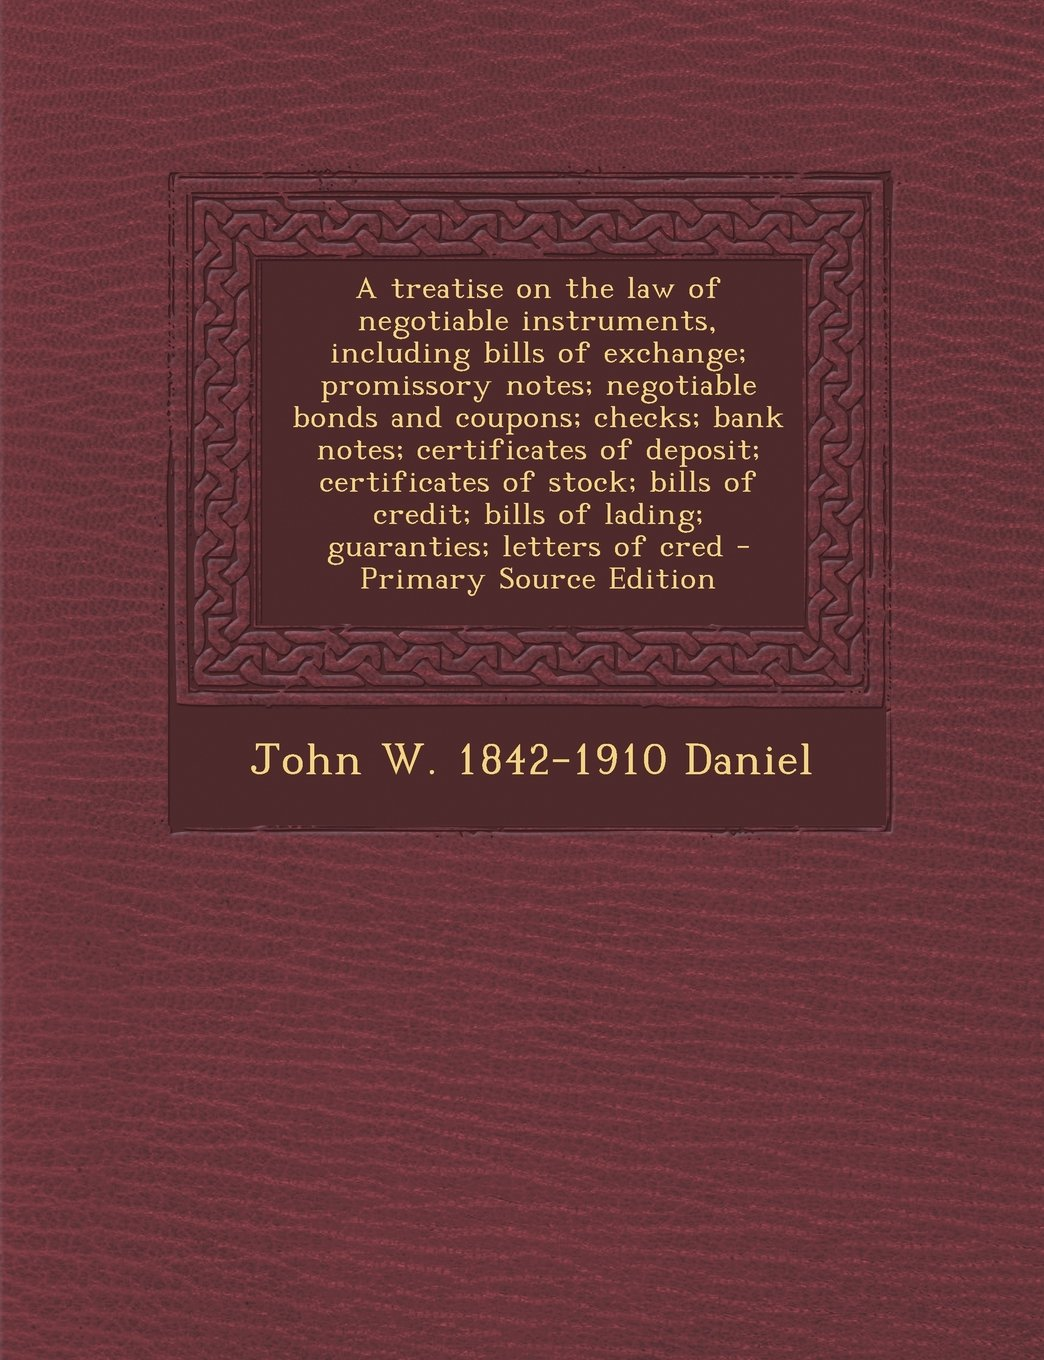 A Treatise On The Law Of Negotiable Instruments Including Bills Of